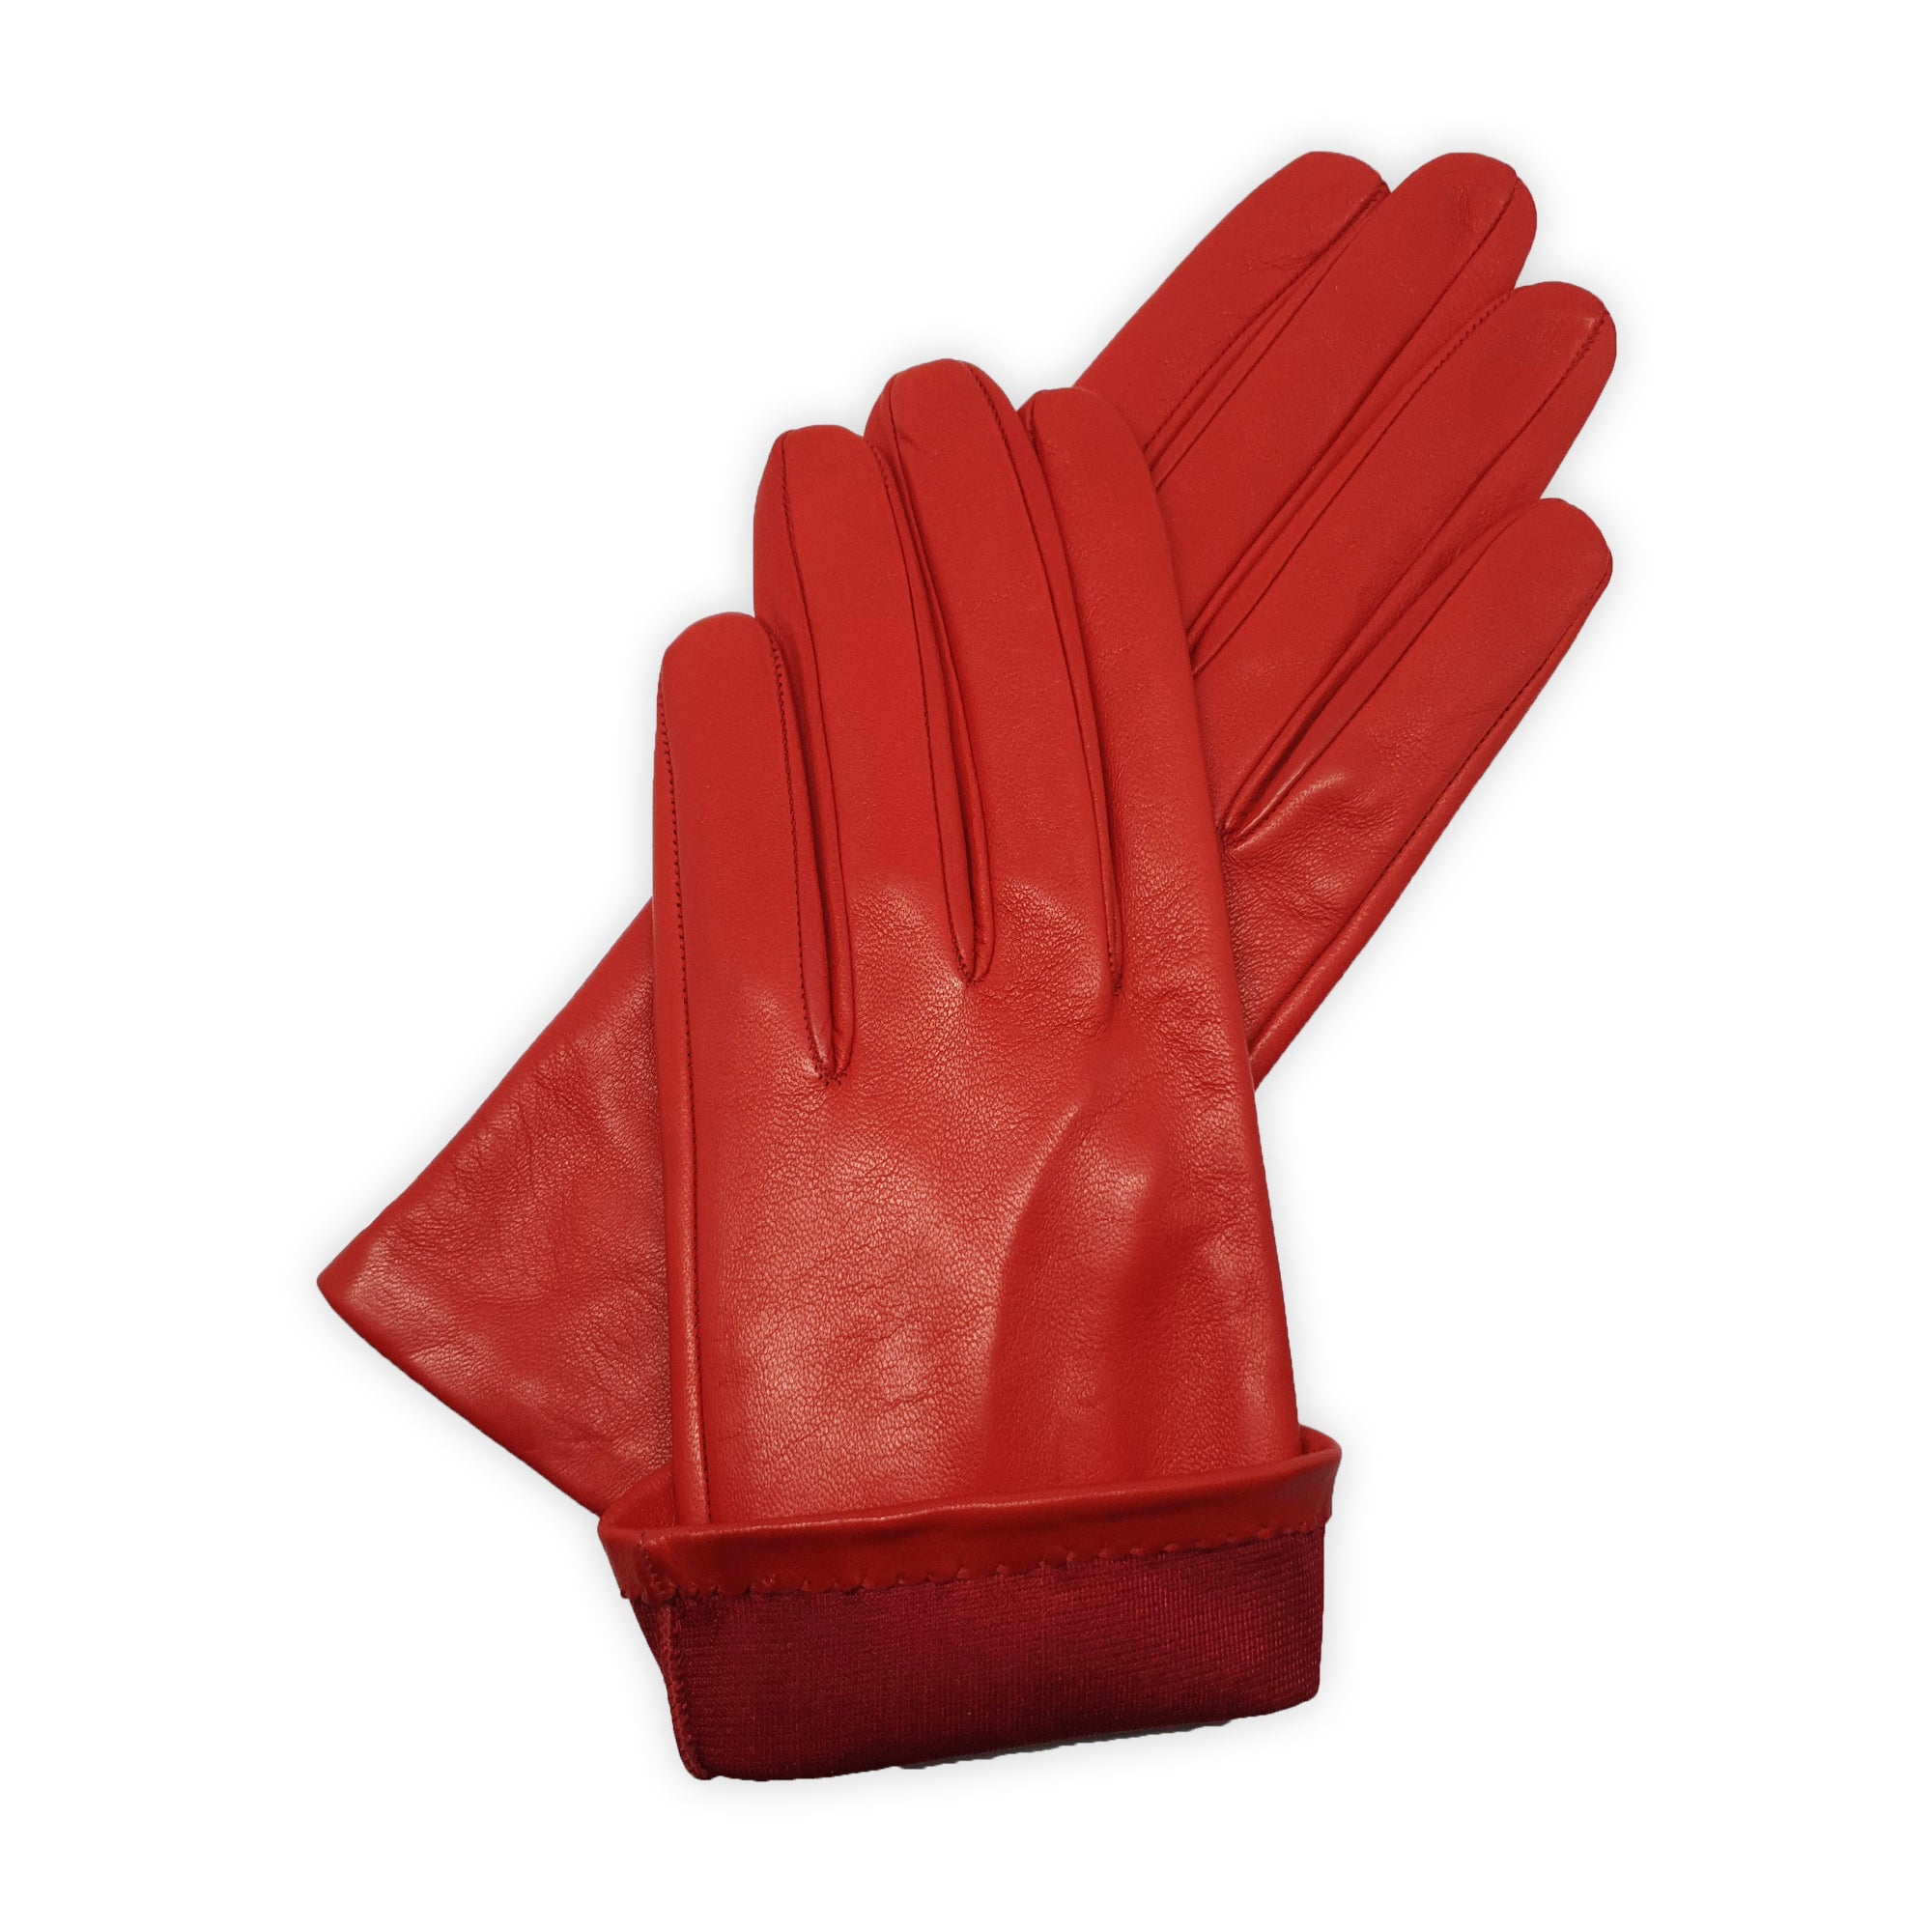 Real leather gloves lined in 100% simple chesciual silk, Treviso model